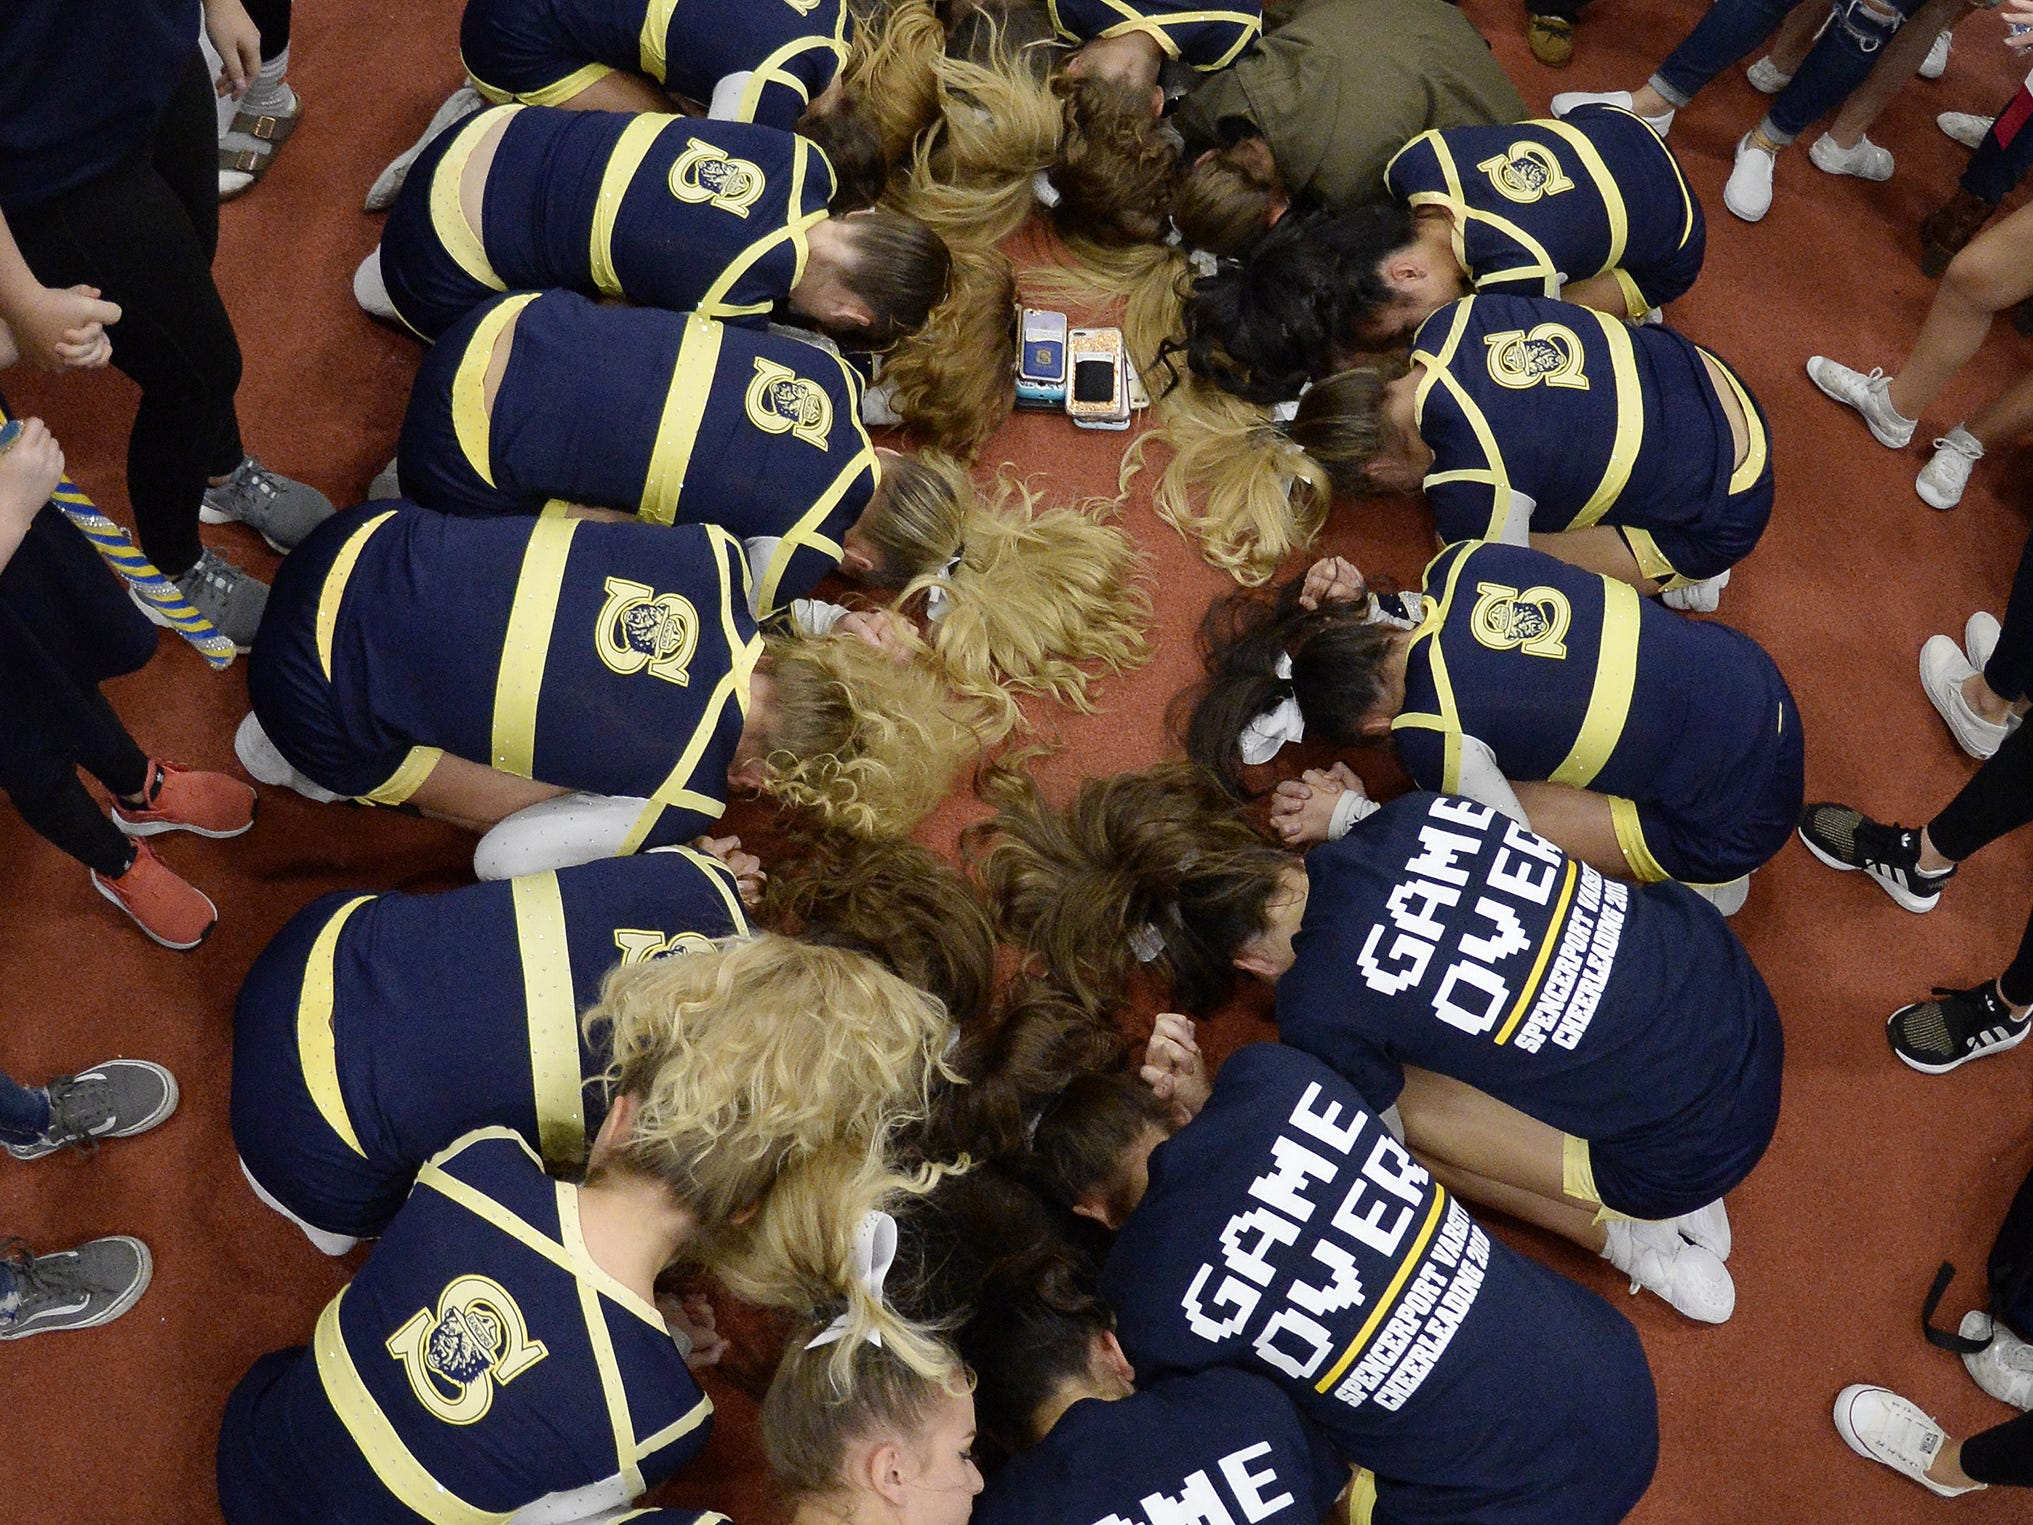 Spencerport cheerleaders wait for results during the Section V Fall Cheerleading Championships at RIT, Saturday, Oct. 27, 2018.